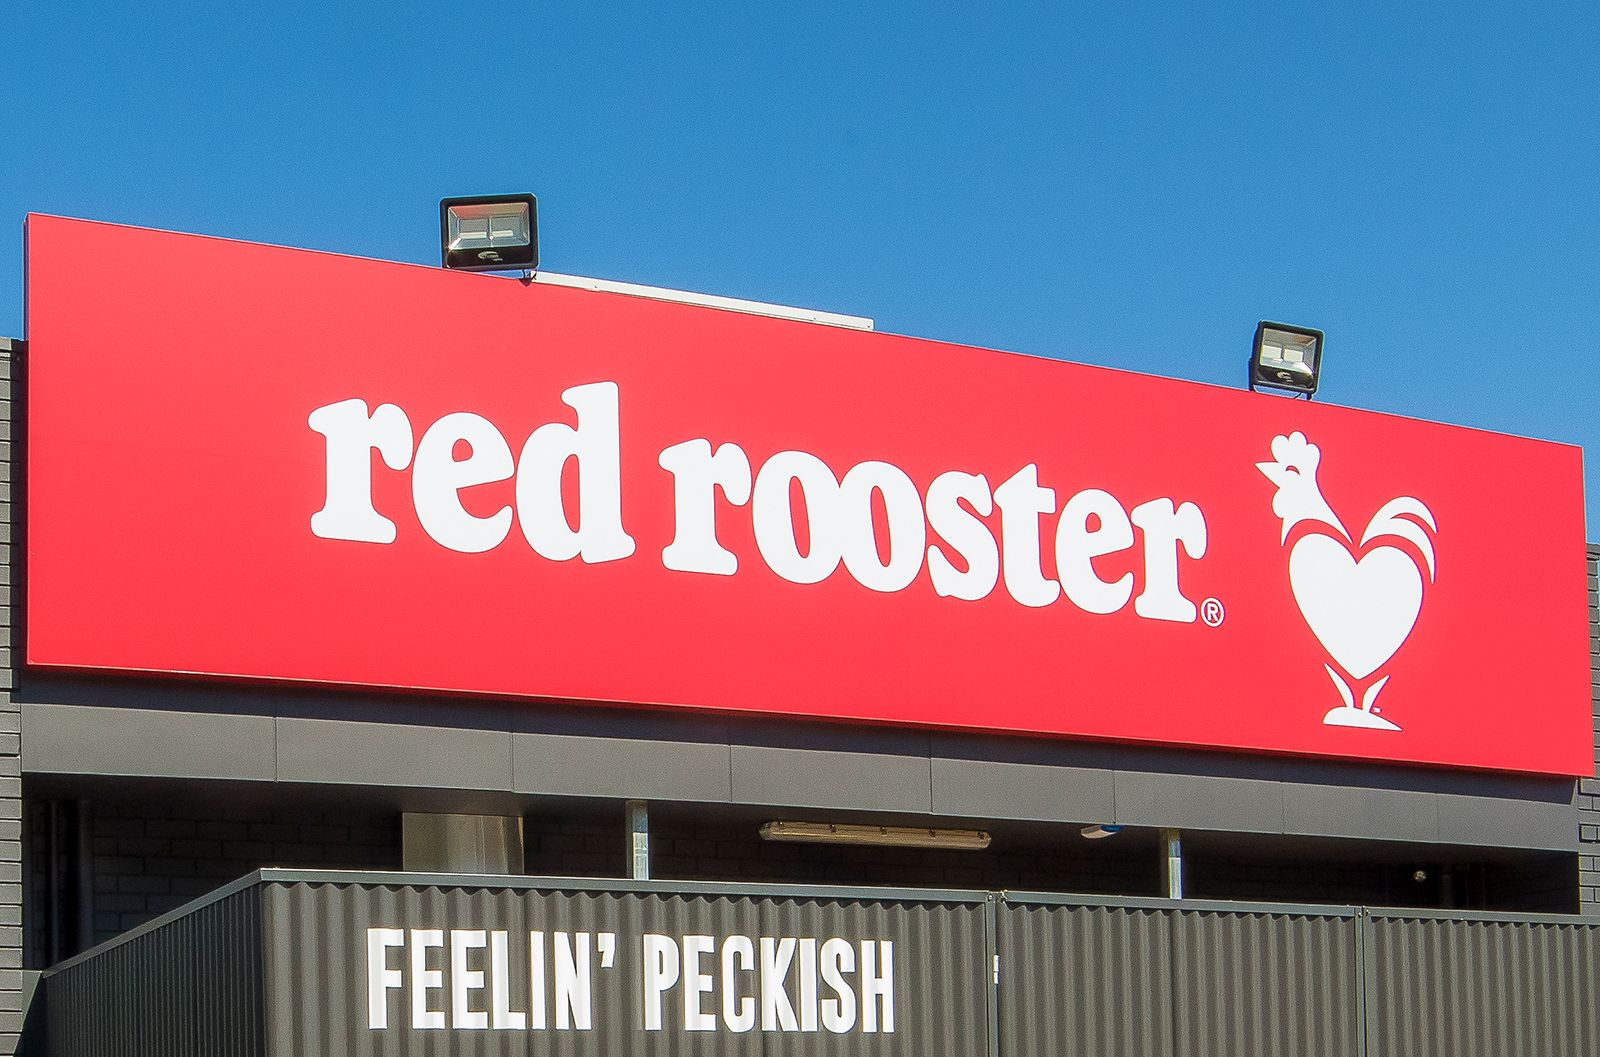 Red Rooster stores reopen after investigation | Inside Franchise Business